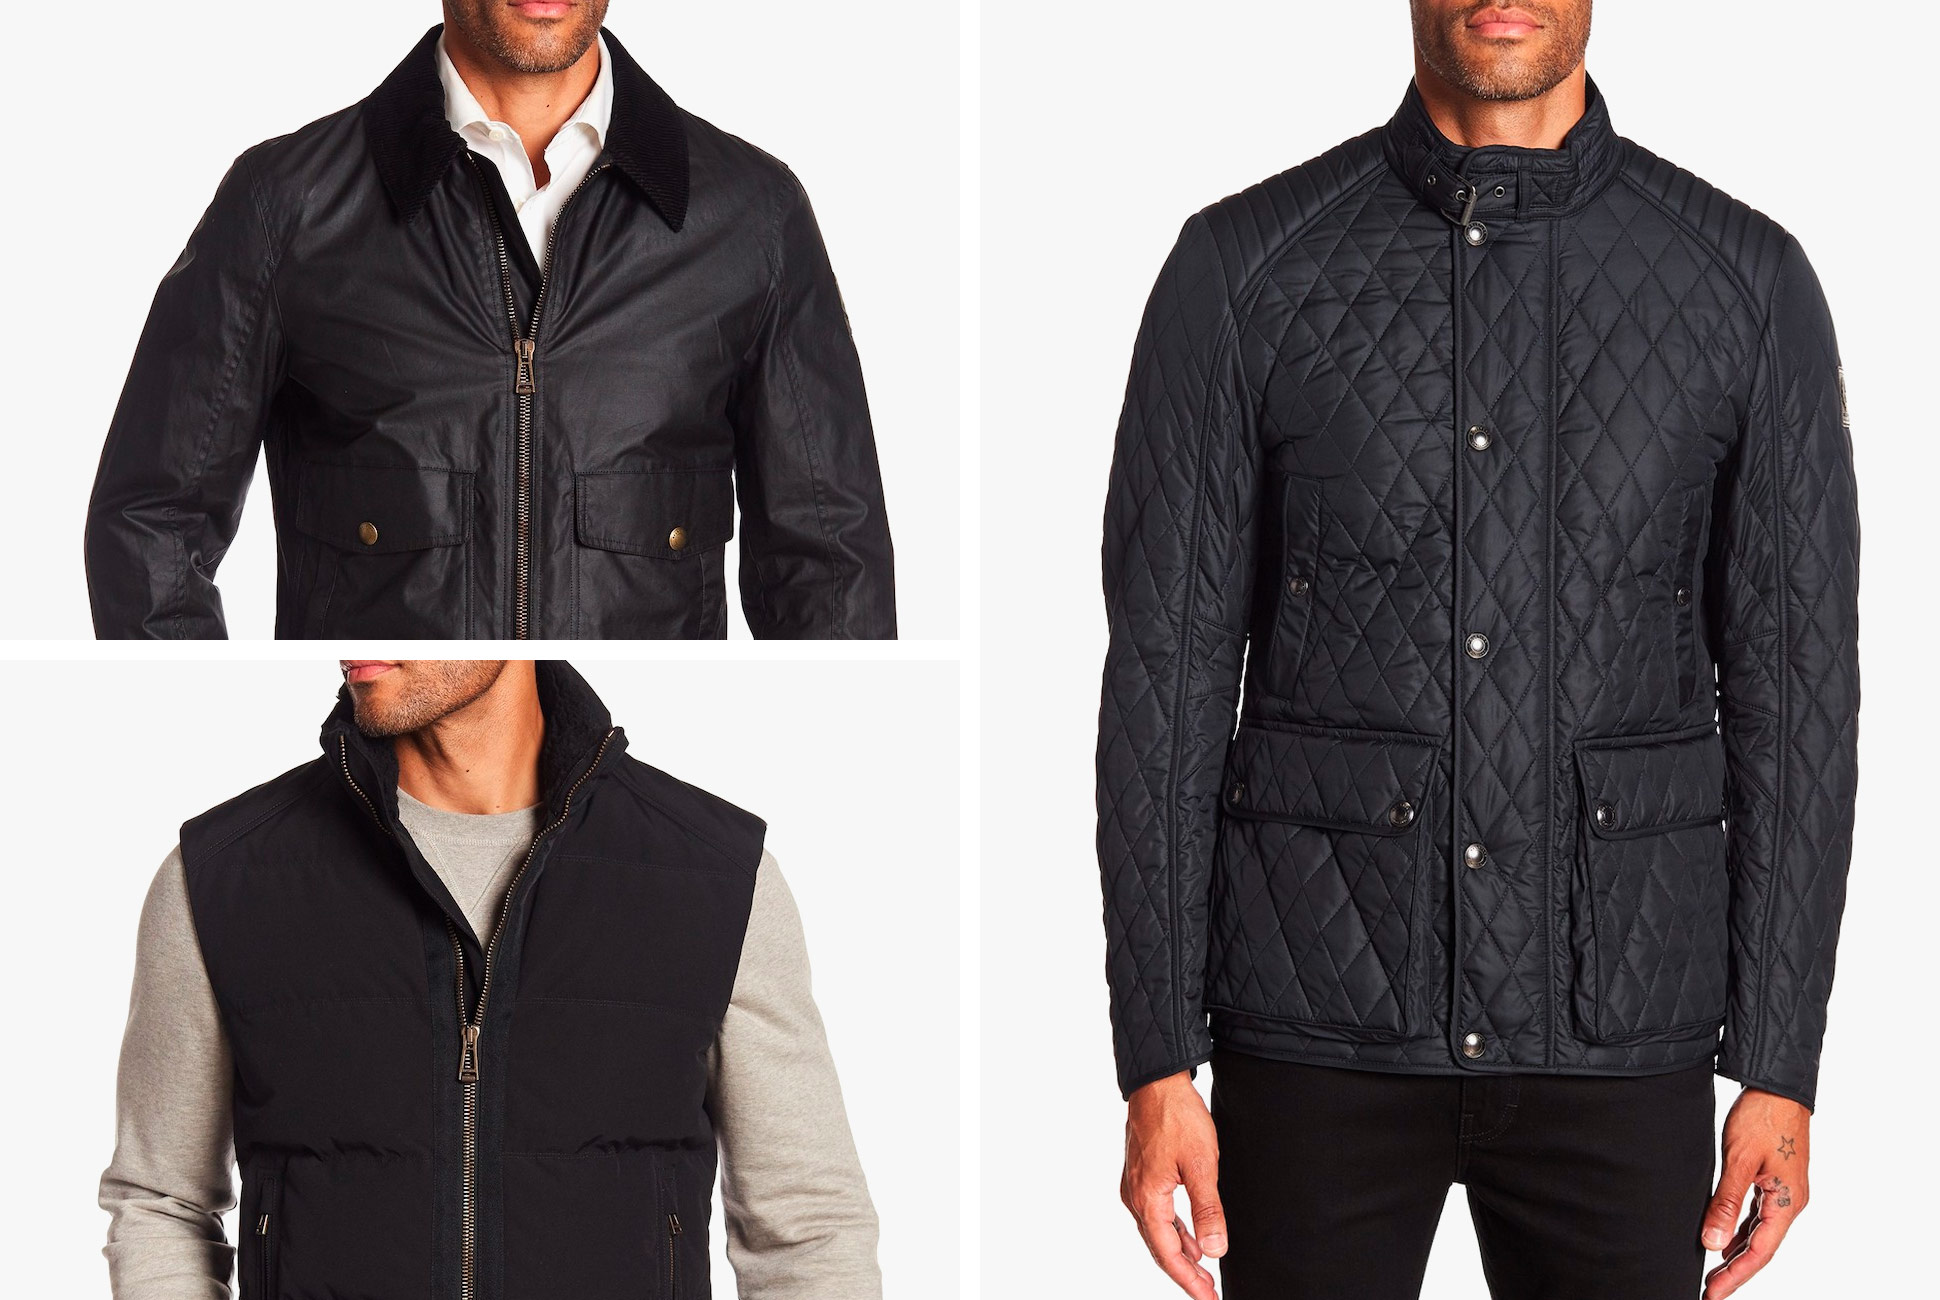 Briefings Ferrari On Track Quilted Wireless Powerbank 10k Mah Black Belstaff Jackets Save 52 Since 1924 Has Earned A Reputation For Producing Range Of Functional Top Tier Outerwear The Uk Based Brand Is Most